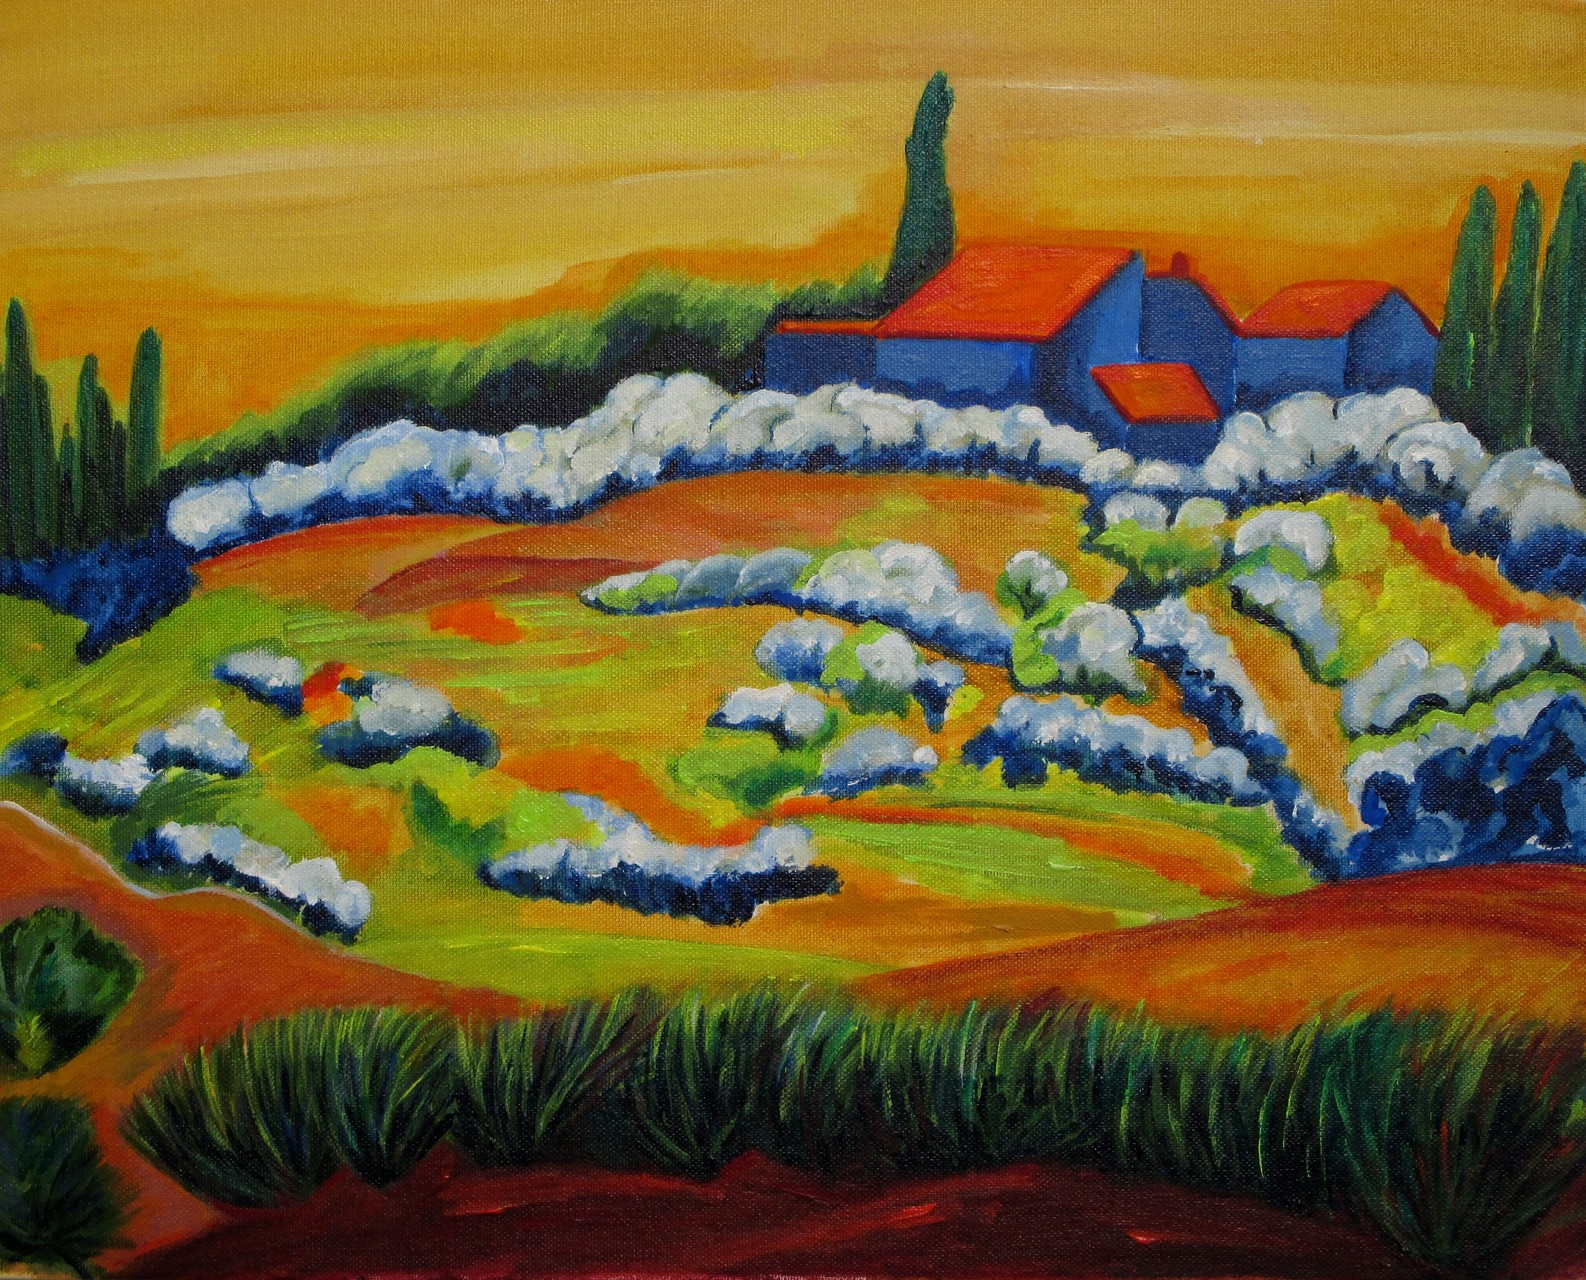 Tuscan Hills, acrylic on canvas, 20 x 16, 2015, SOLD